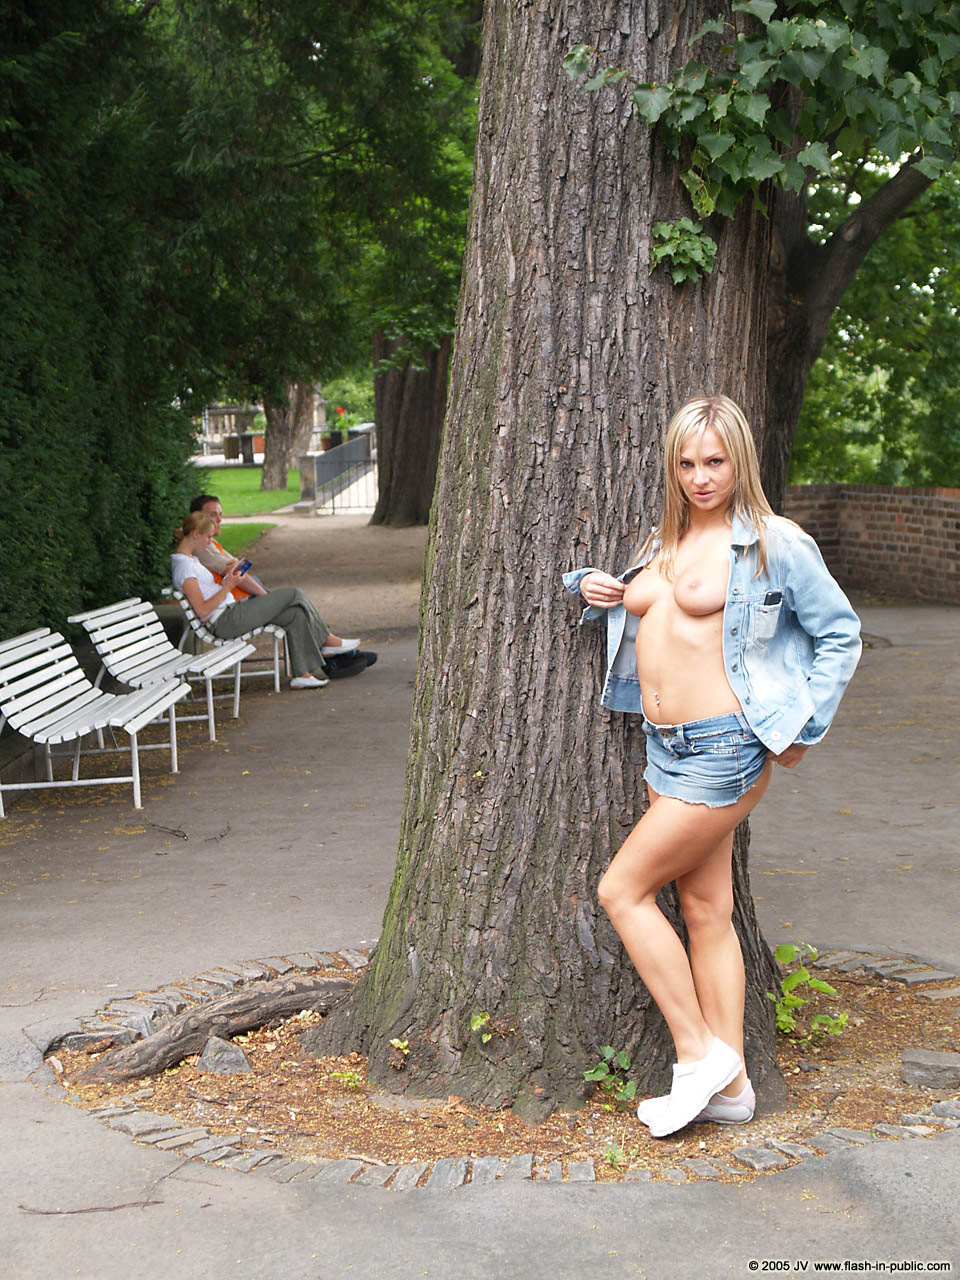 vendula-bednarova-jeans-miniskirt-flash-in-public-09